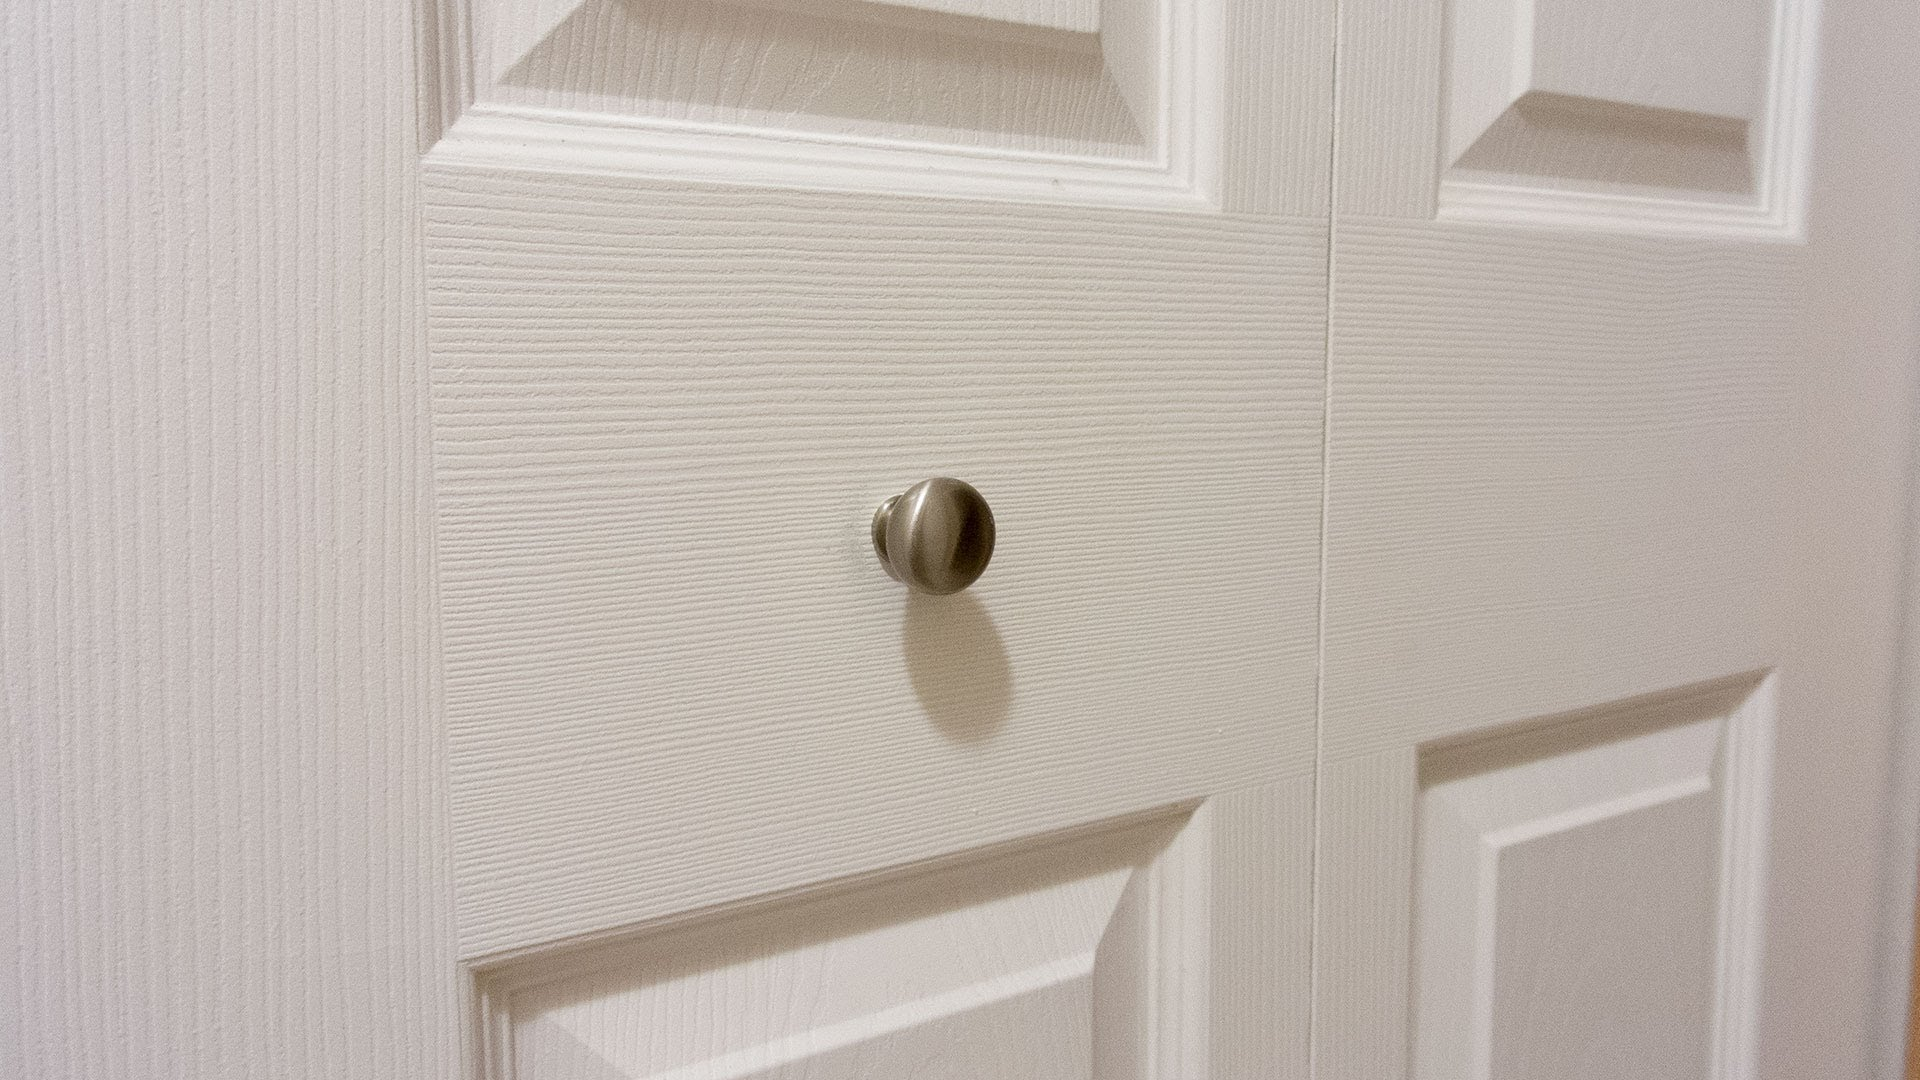 closet door knob photo - 1